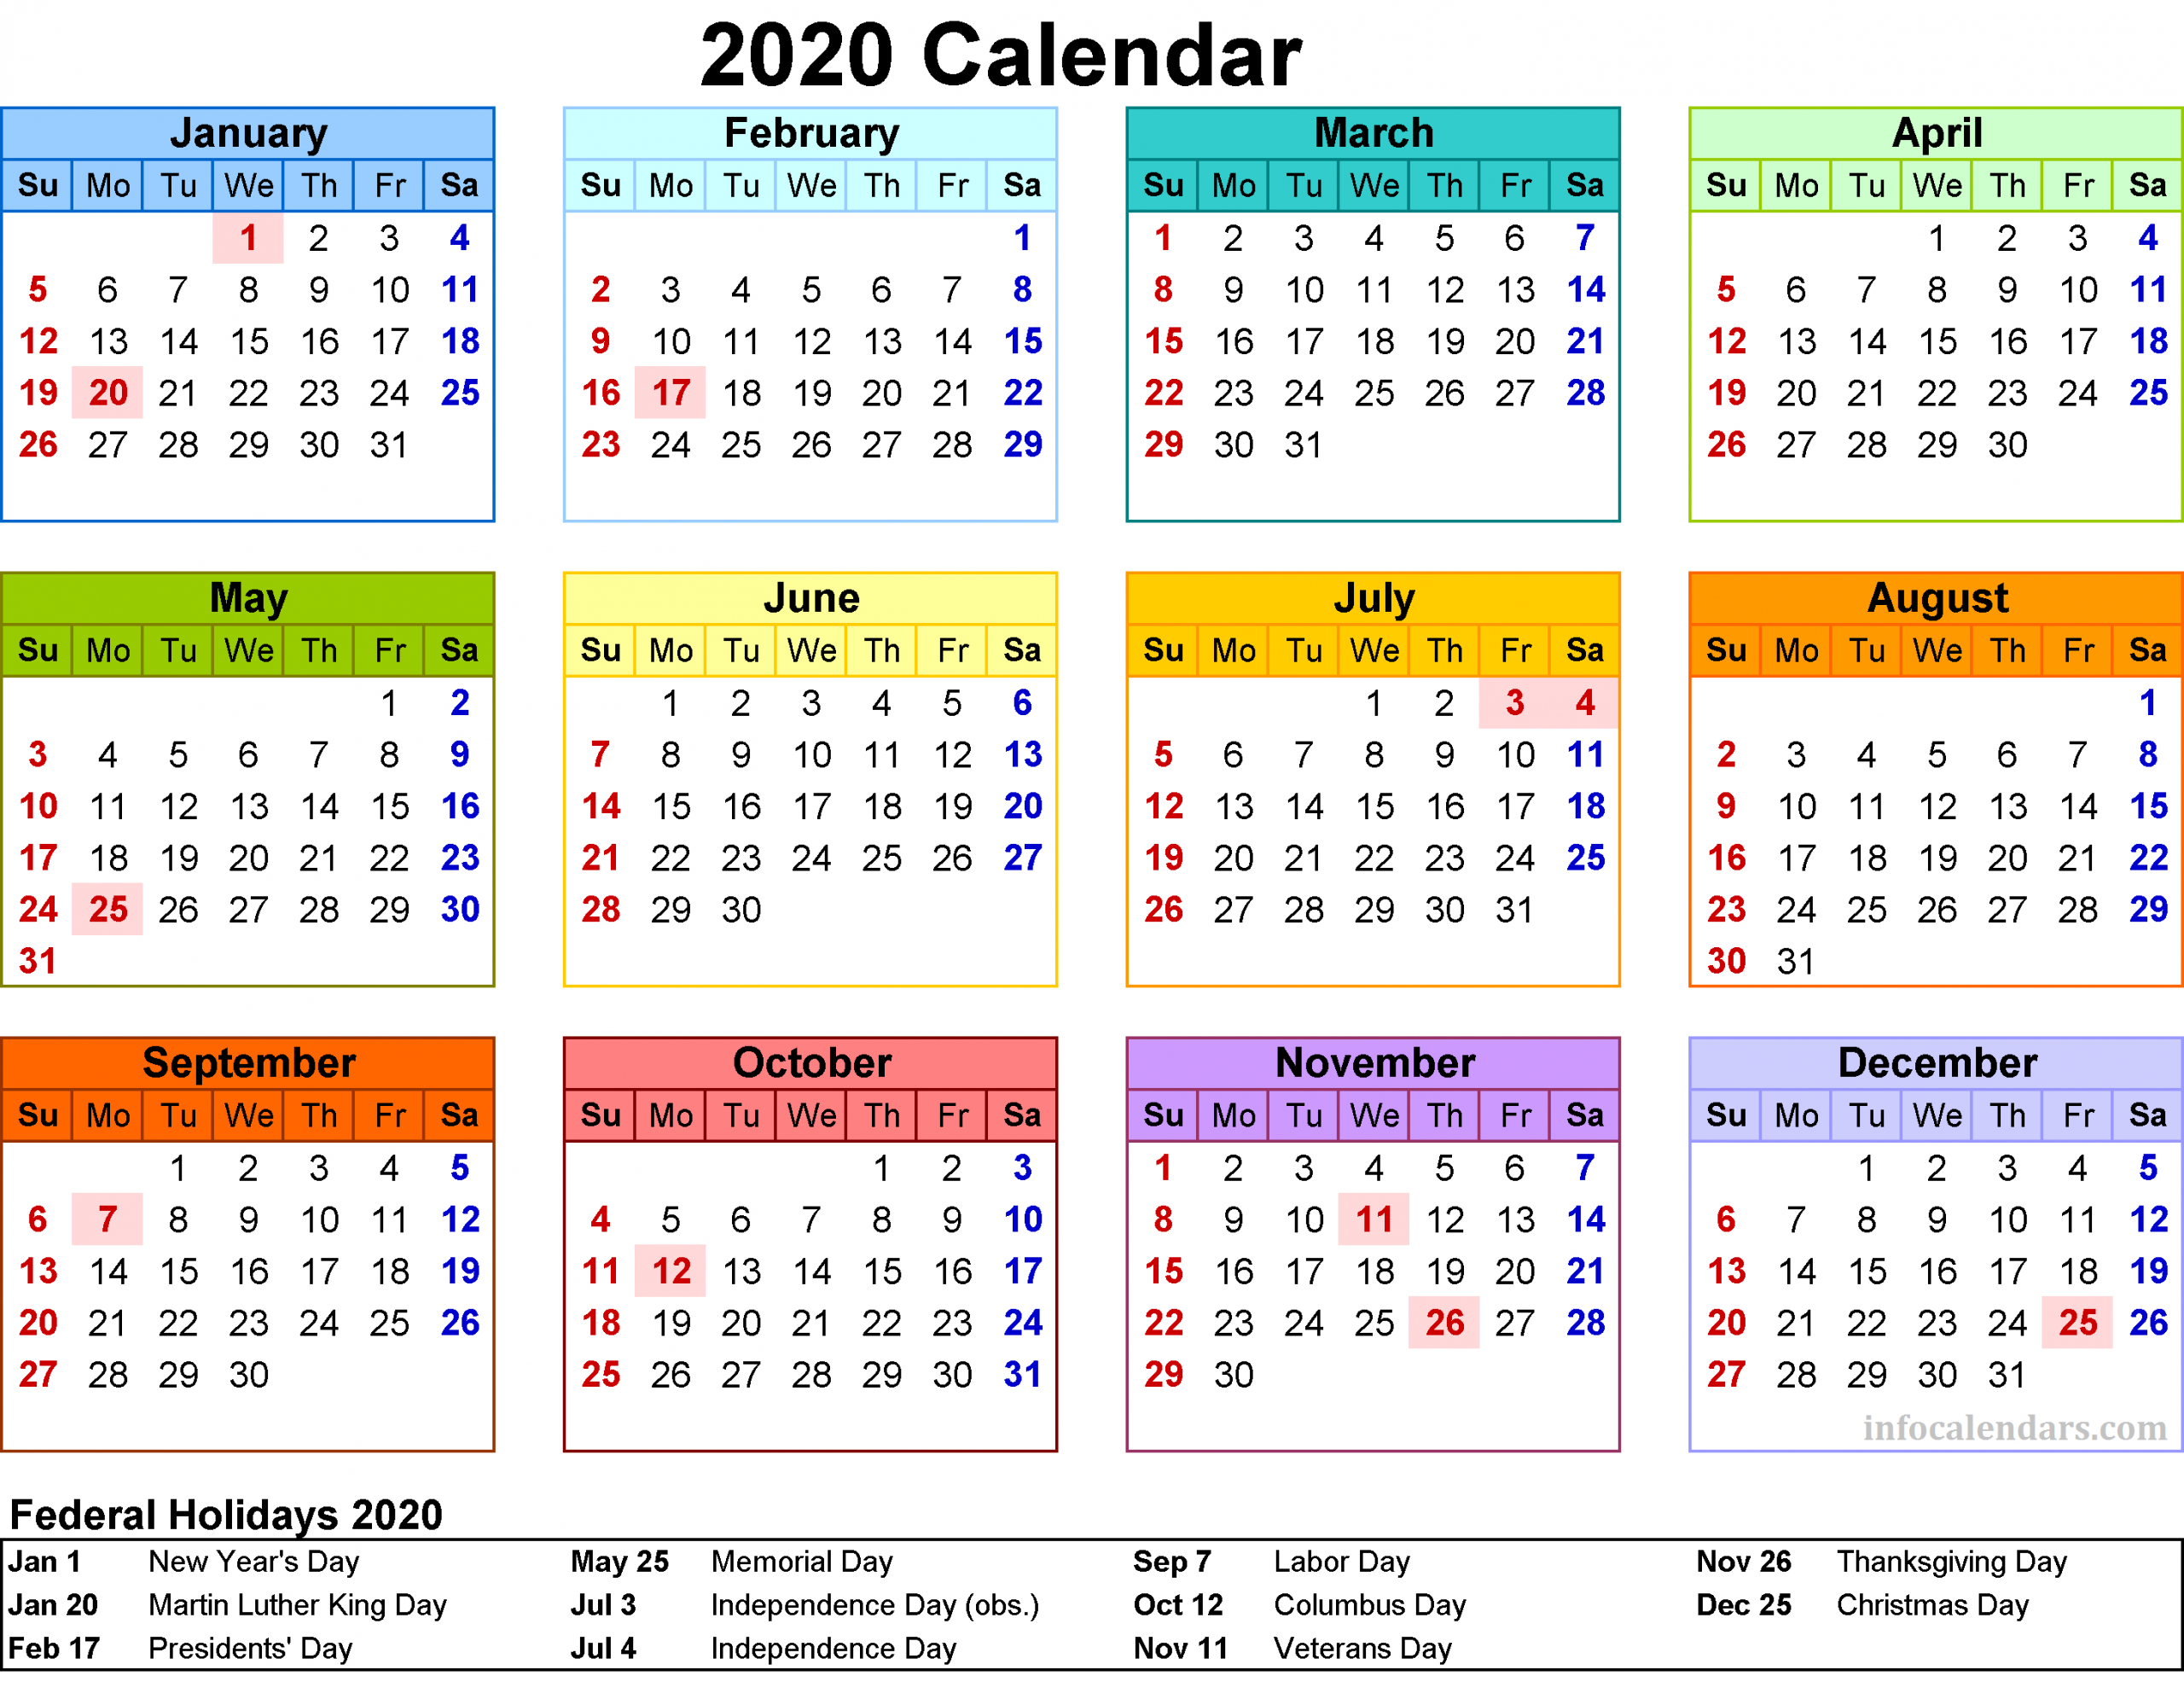 Printable 2020 Calendar For Your Yearly Trip - Infocalendars